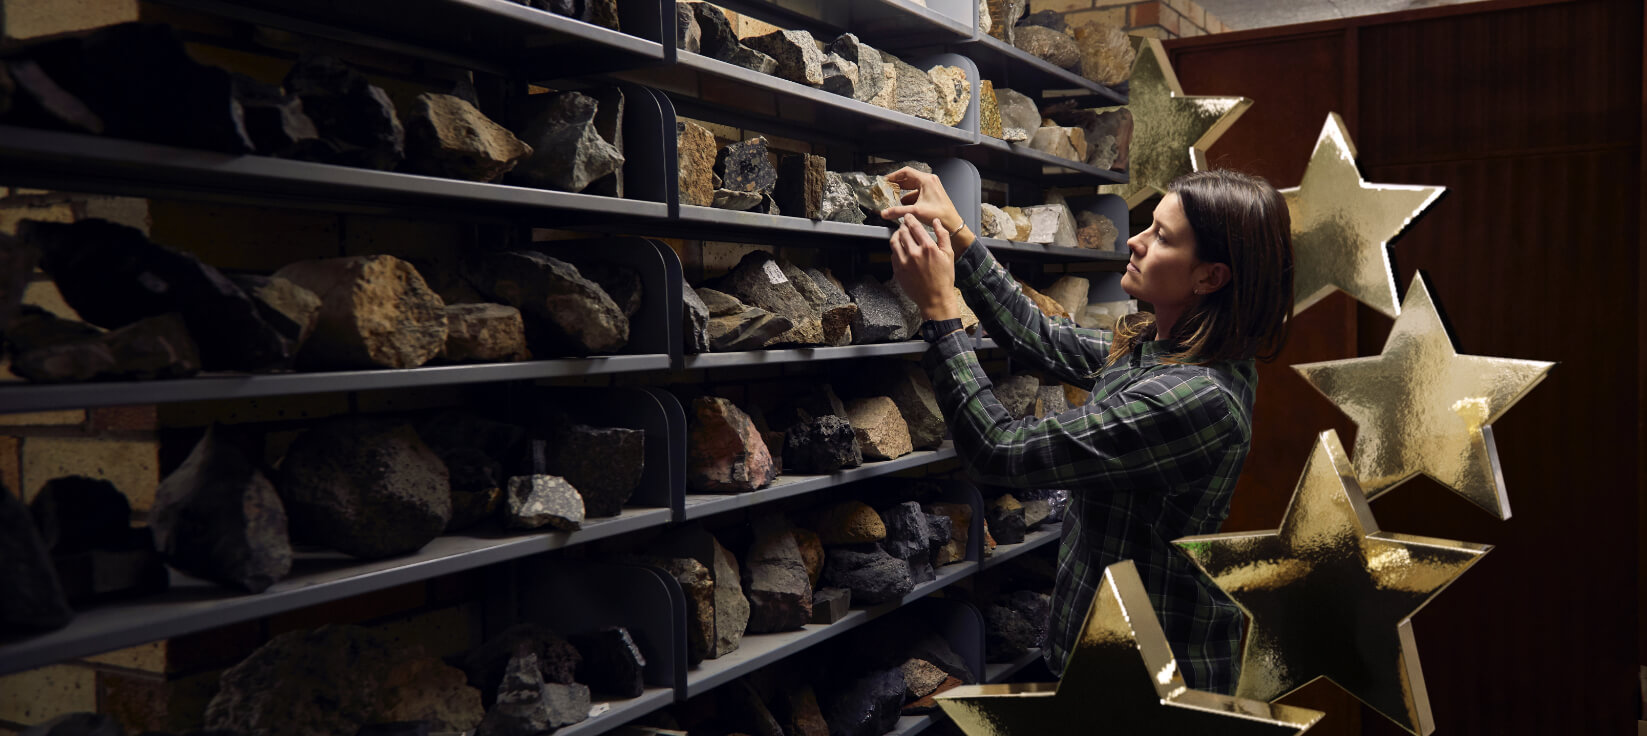 Dr Marissa Betts examining a fossil from a display of specimens with 5 stars in the background.